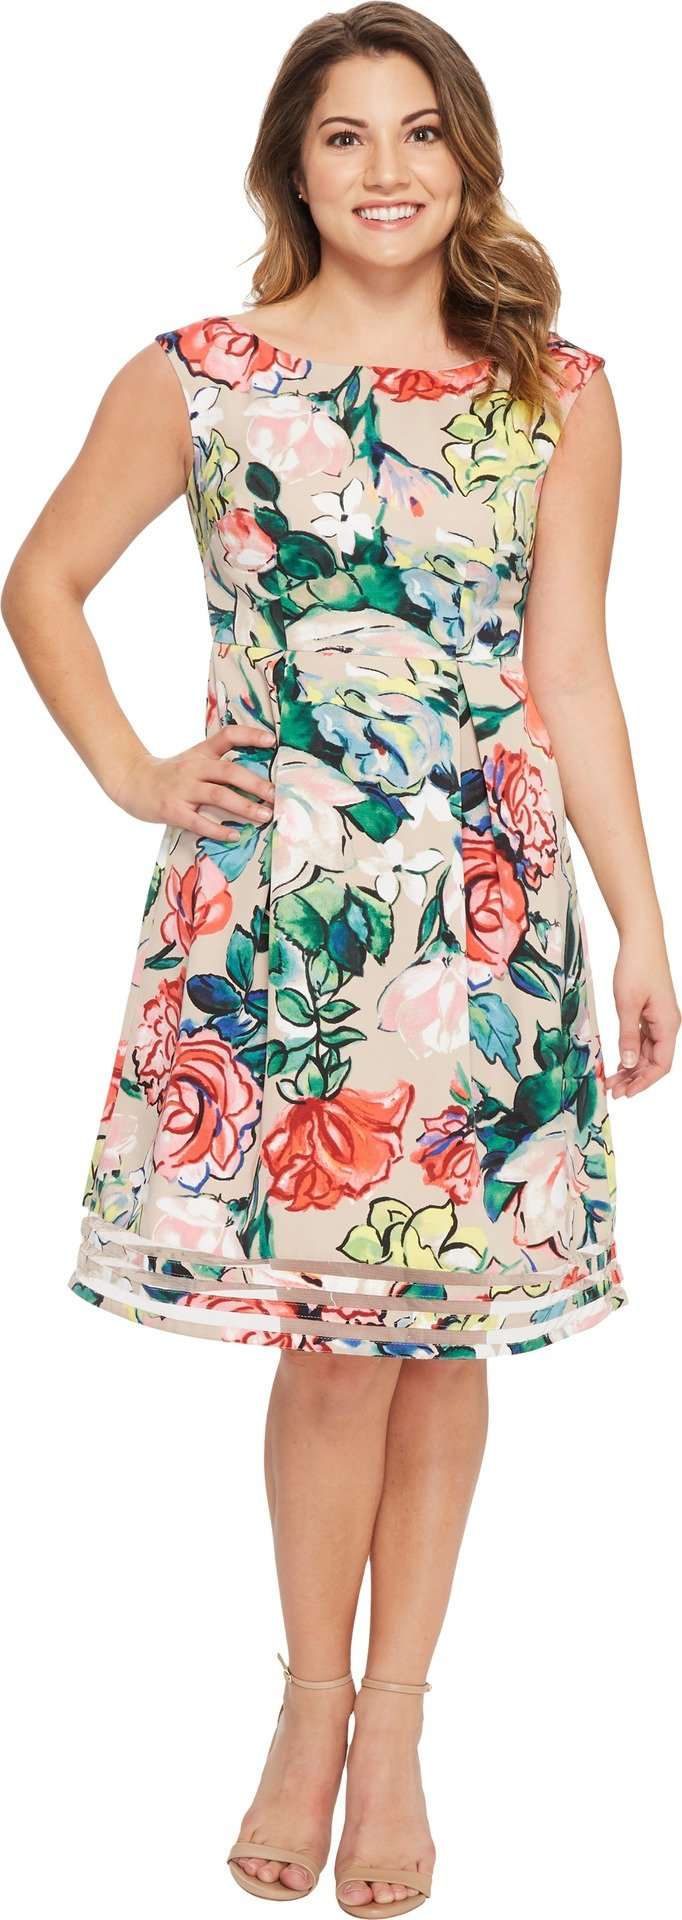 Adrianna Papell Women's Petite Stained Glass Floral Faille Fit and Flare Dress, Khaki Multi, 12